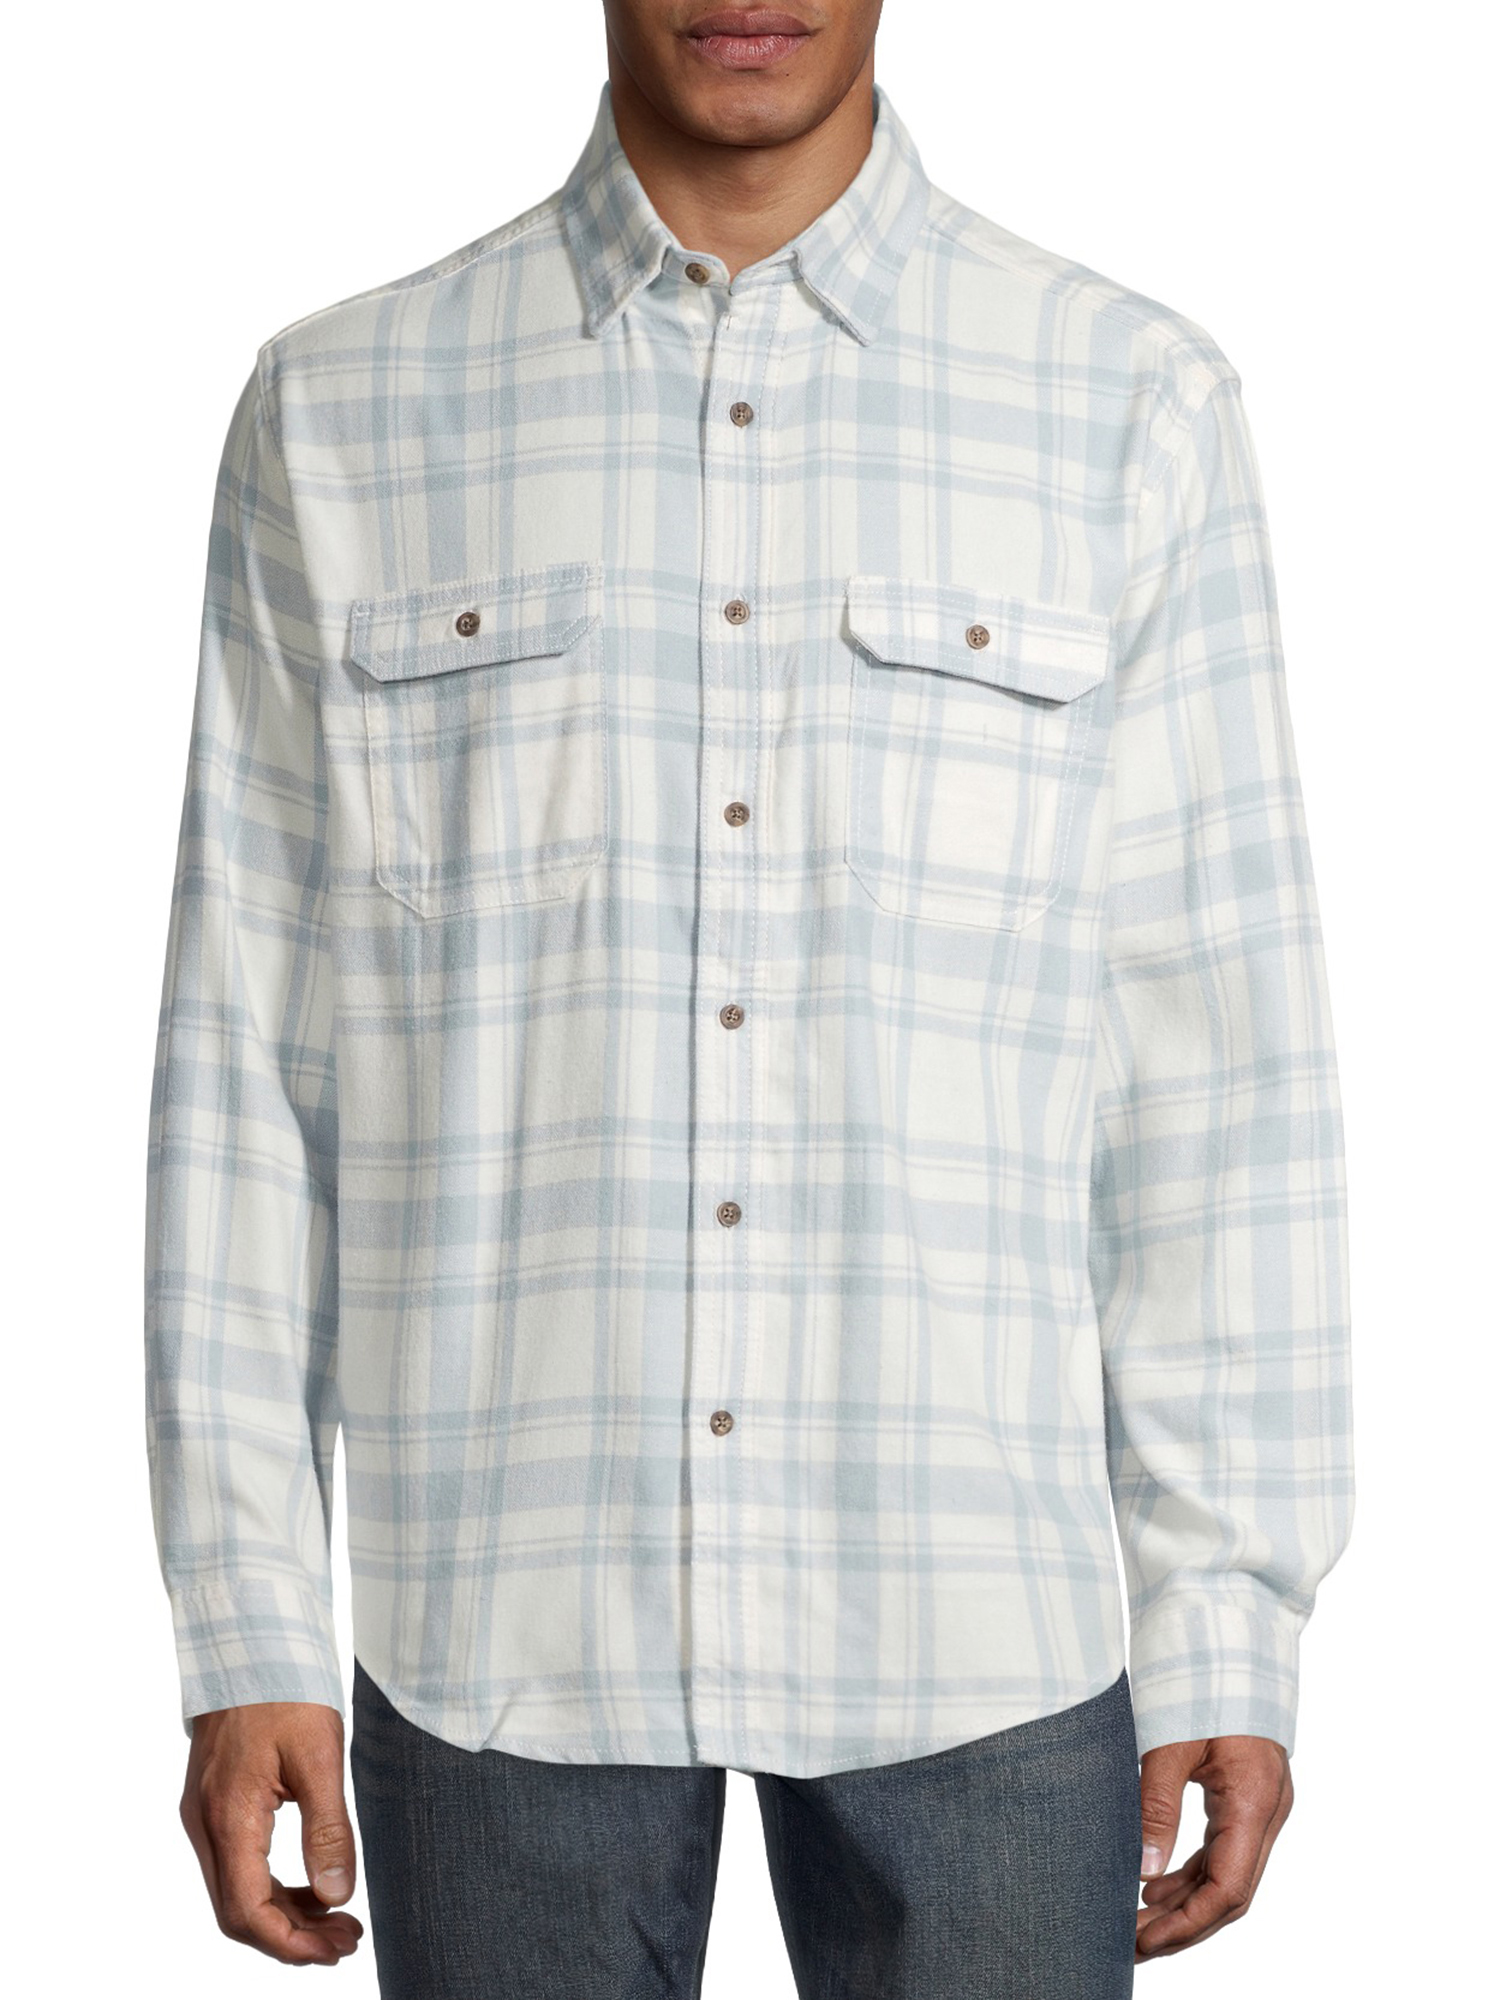 George Men's and Big Men's Super Soft Flannel Shirt White Blue Plaid (Size 3XL 54-56)